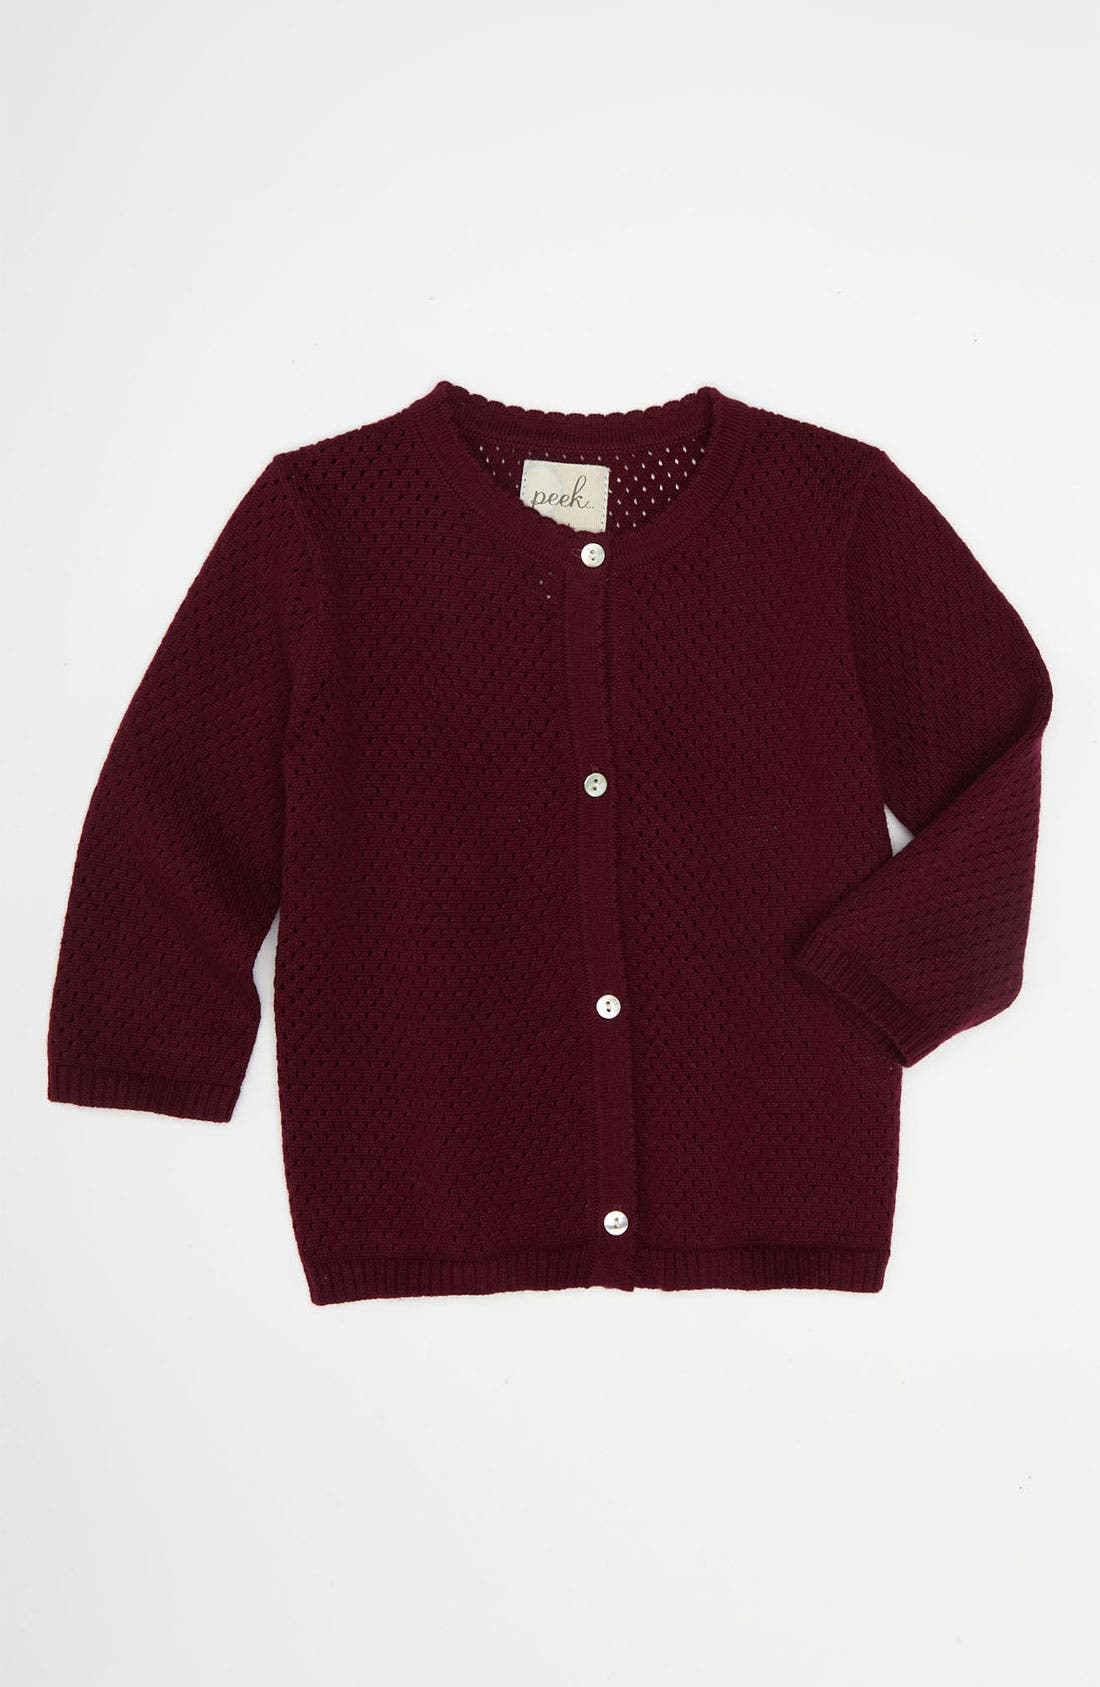 Main Image - Peek 'Plum' Cardigan (Infant)